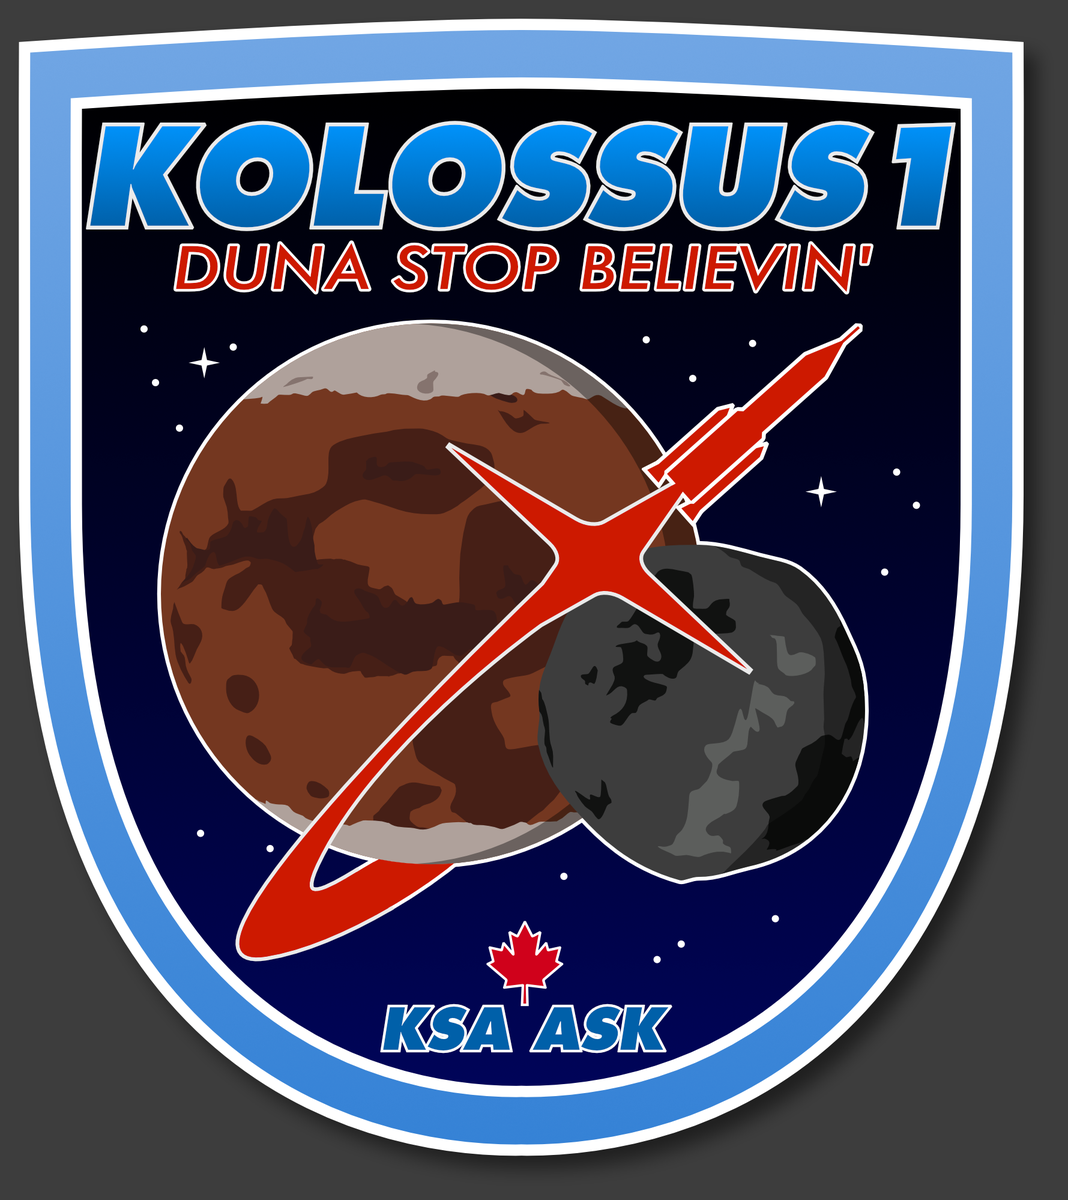 Kerbal Space Program On Twitter Gravitas Shortfalls Mission Patch For An Upcoming Trip To Duna This Looks Cool KSP Tco Lc746OBDvu